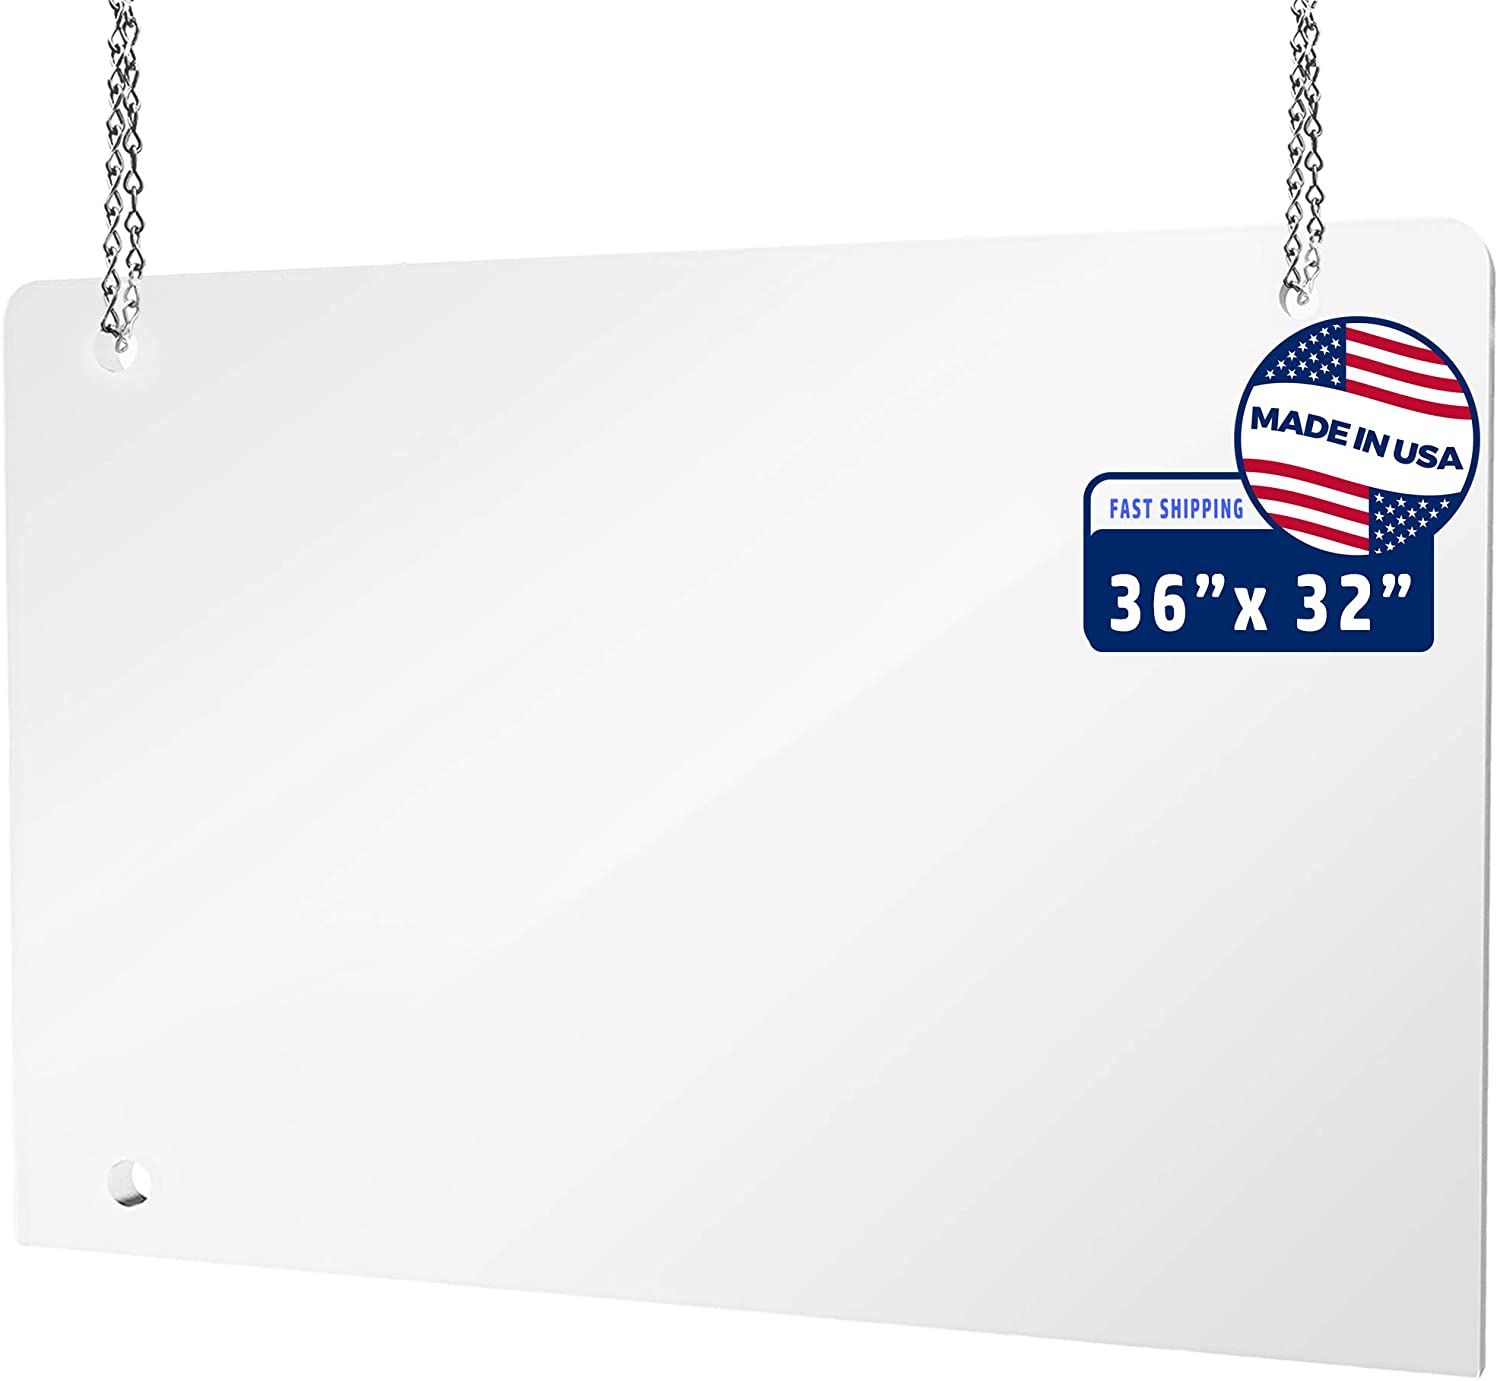 Hanging Protective Sneeze Guard Shield for Counter, Desk, Business and Customer Safety, Portable Plexiglass Barrier, Shield and Guard for Business, School. With Hanging Hardware. (36x32)